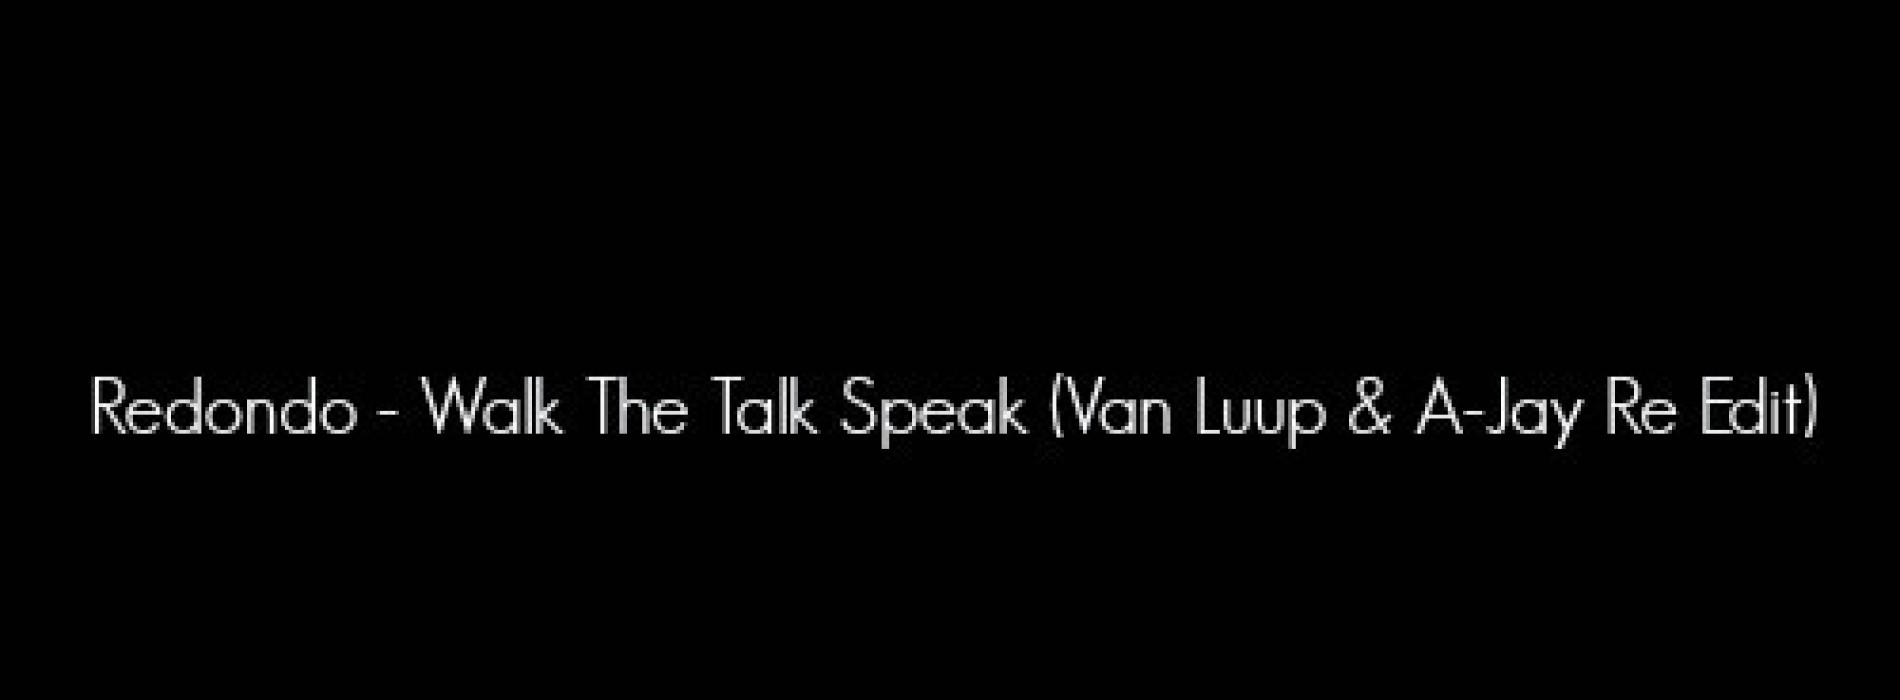 Walk The Talk Speak (Van Luup & A-Jay Re Edit)